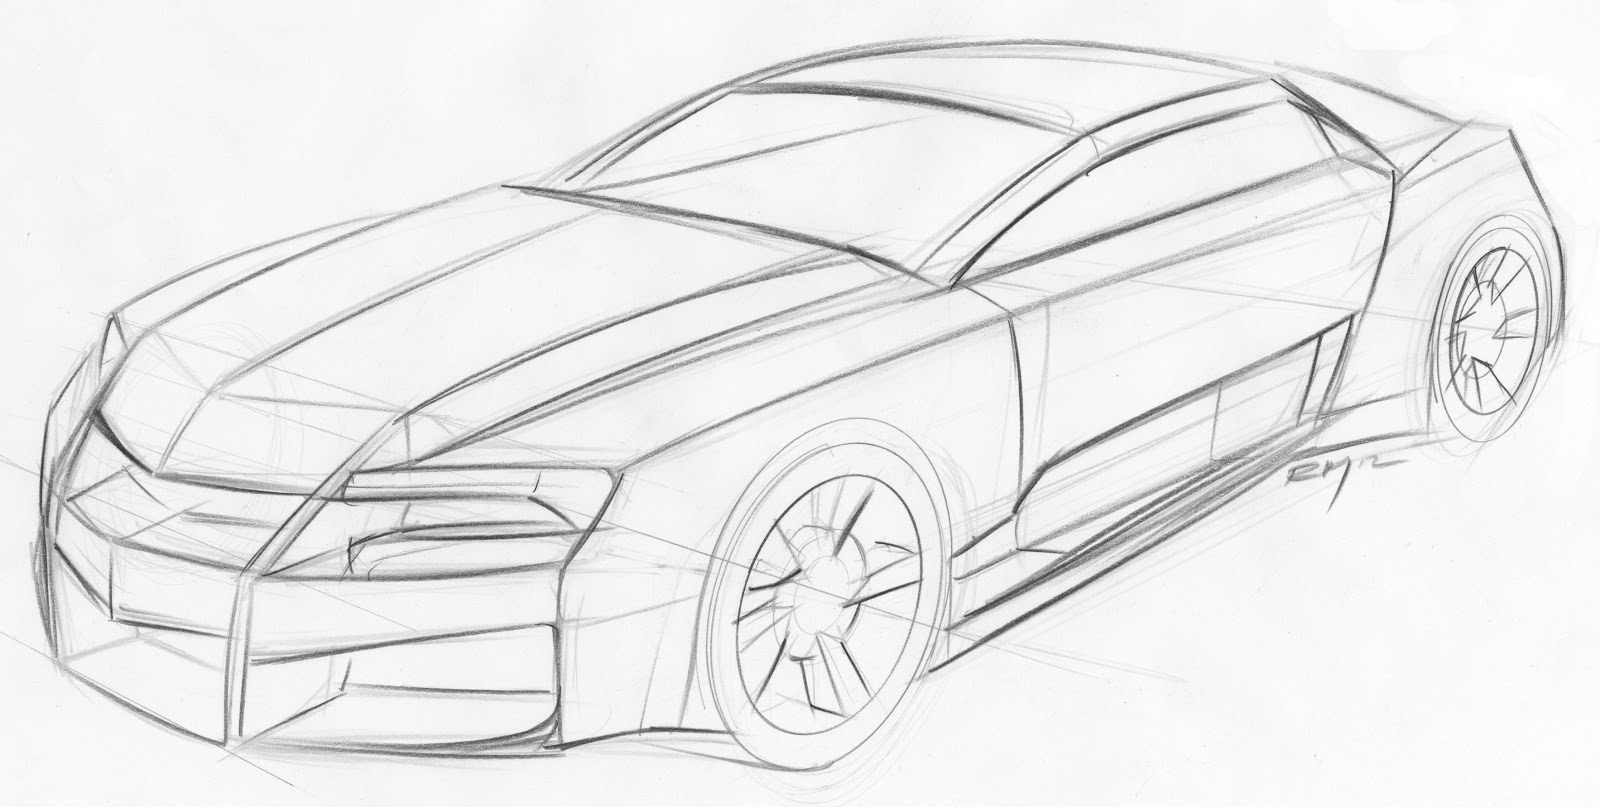 69 Camaro Sketch Templates